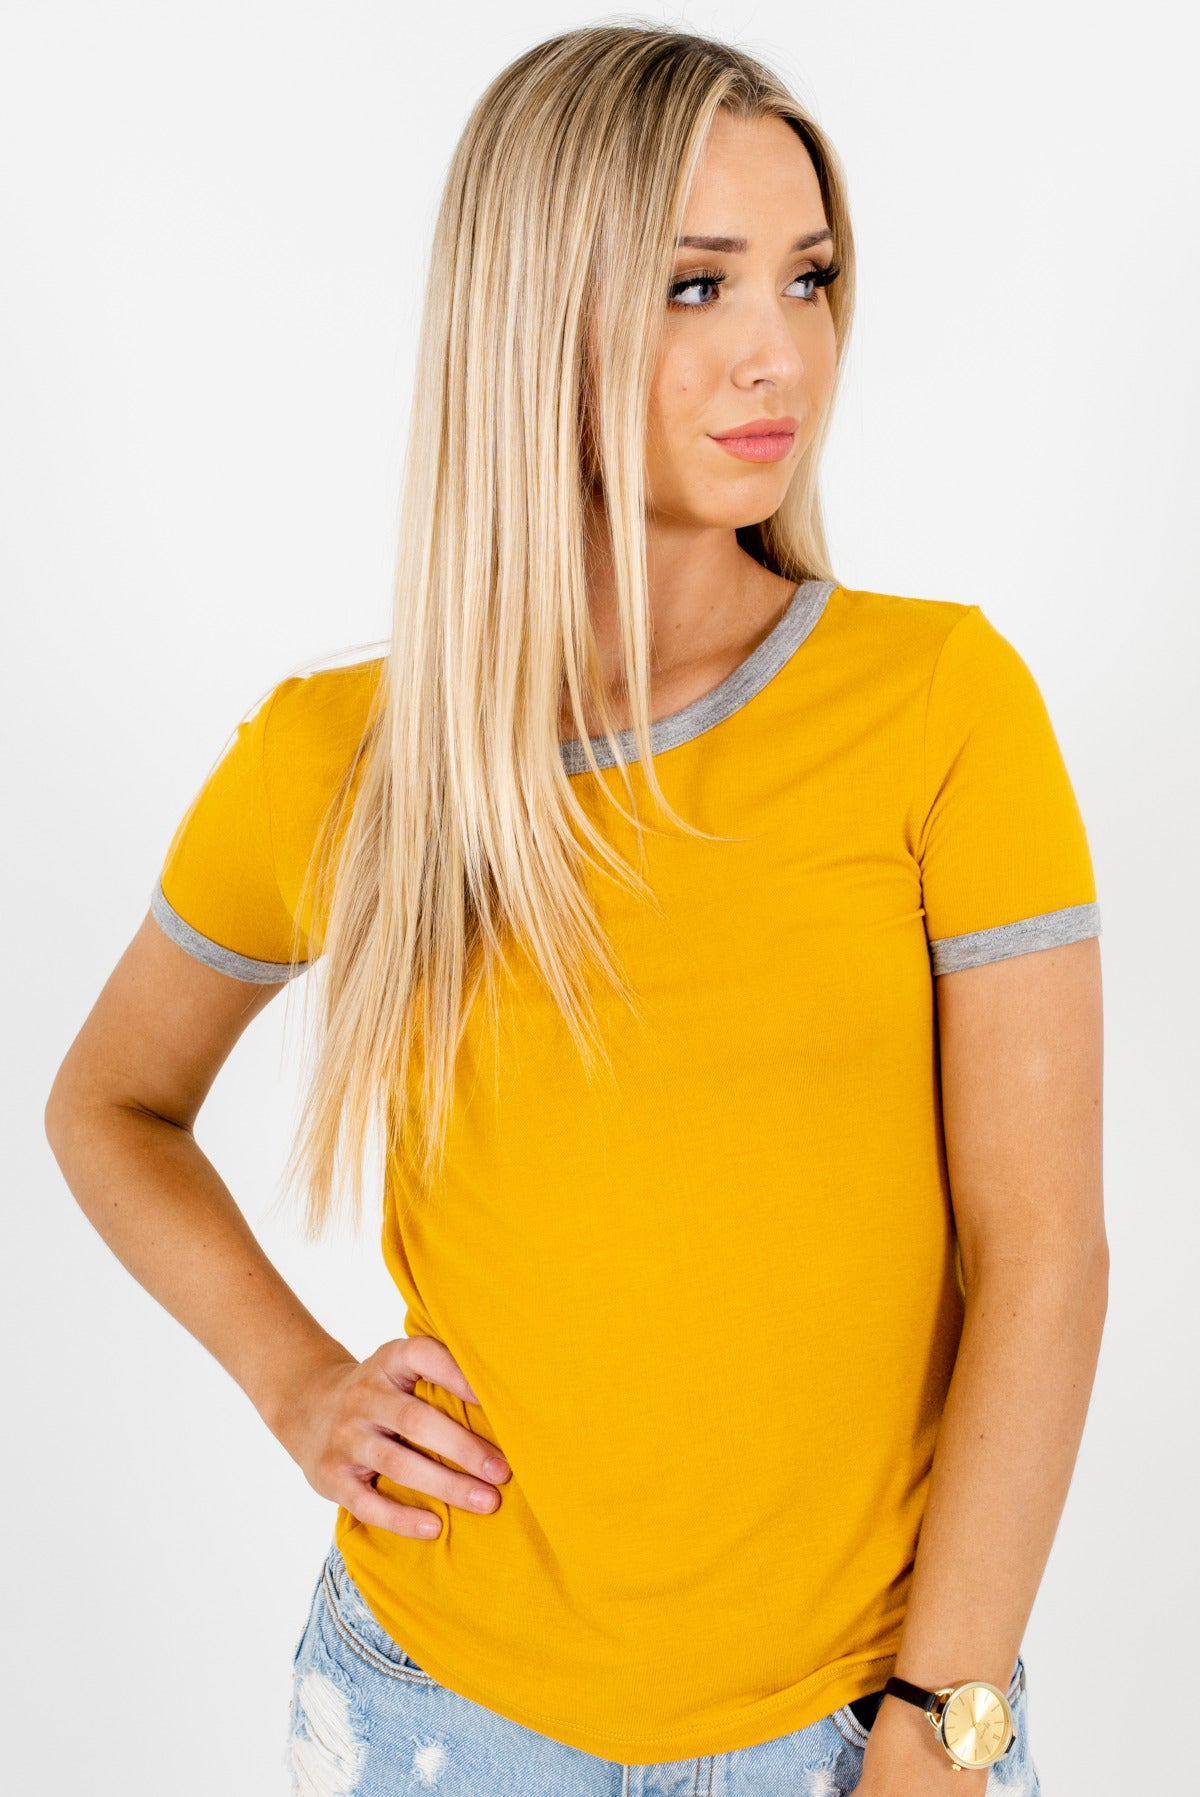 Mustard Yellow and Heather Gray Ringer Style Boutique Tees for Women